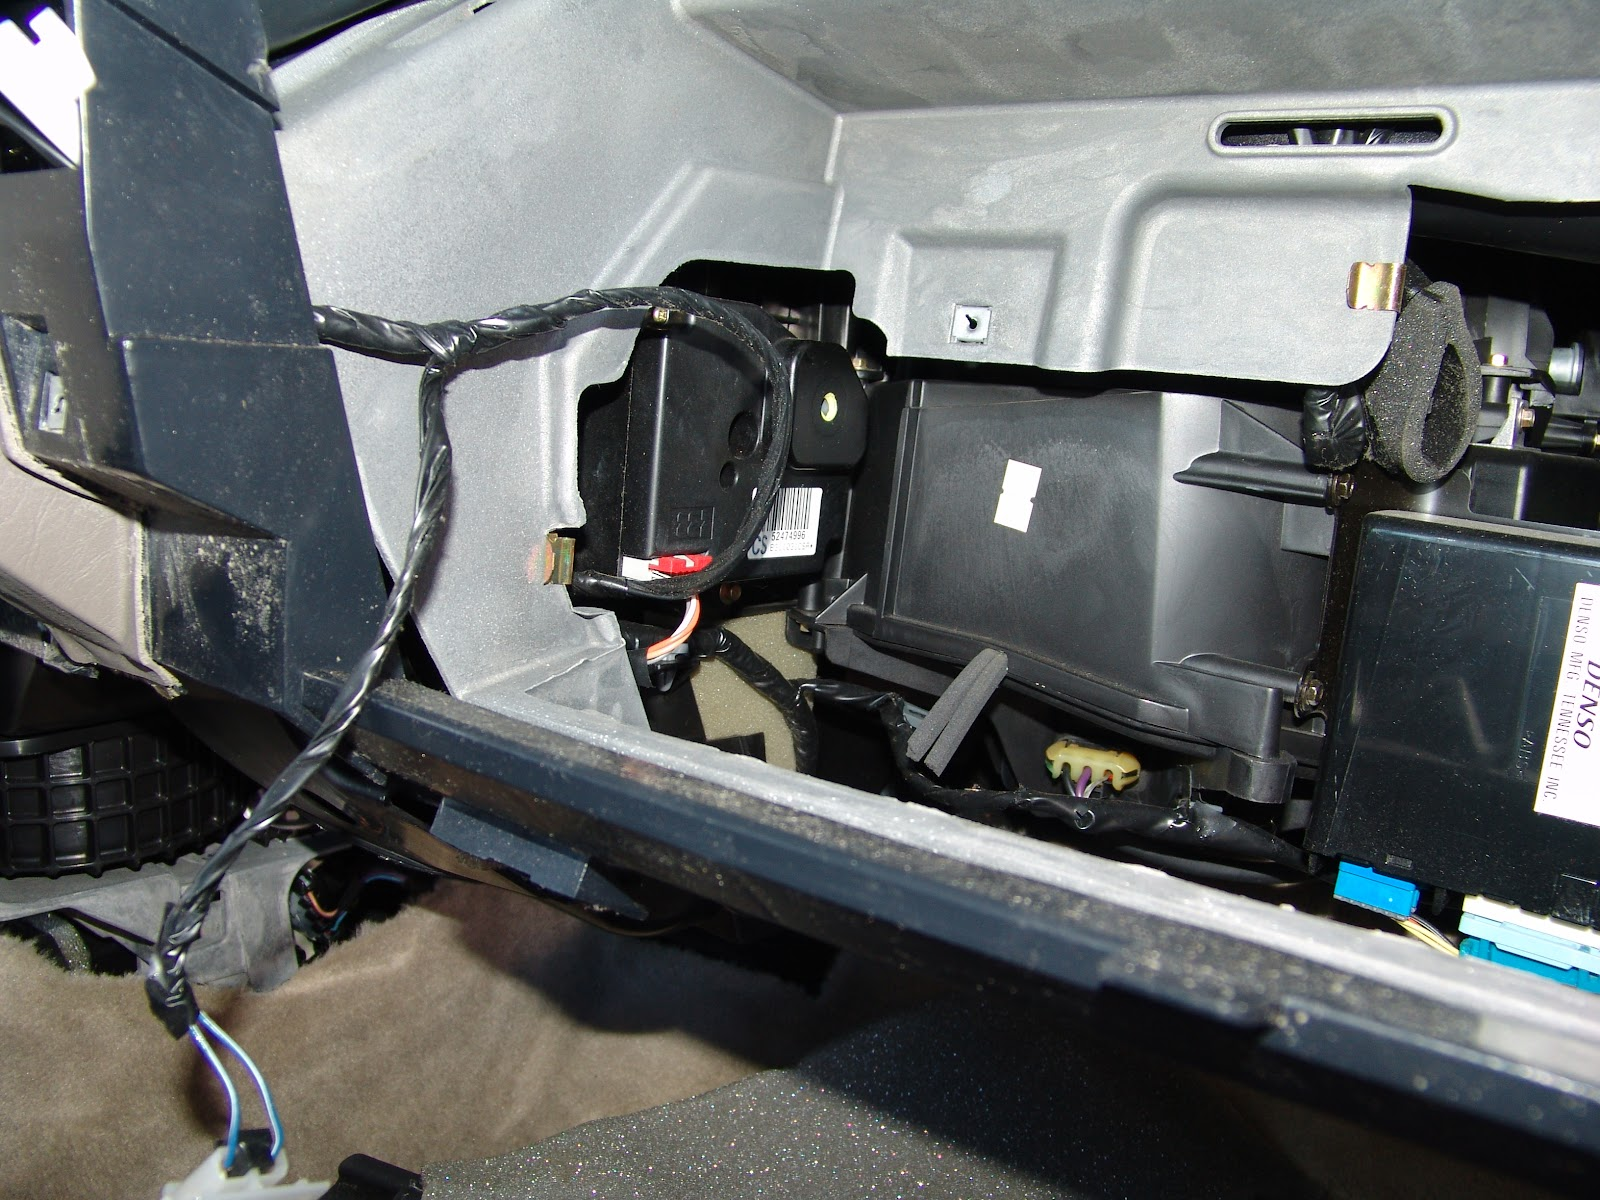 94 Cadillac Deville Fuse Box Location Electrical Wiring Diagram In 2002 Heater Blower Motor 2005 Chevy Equinox Get Free